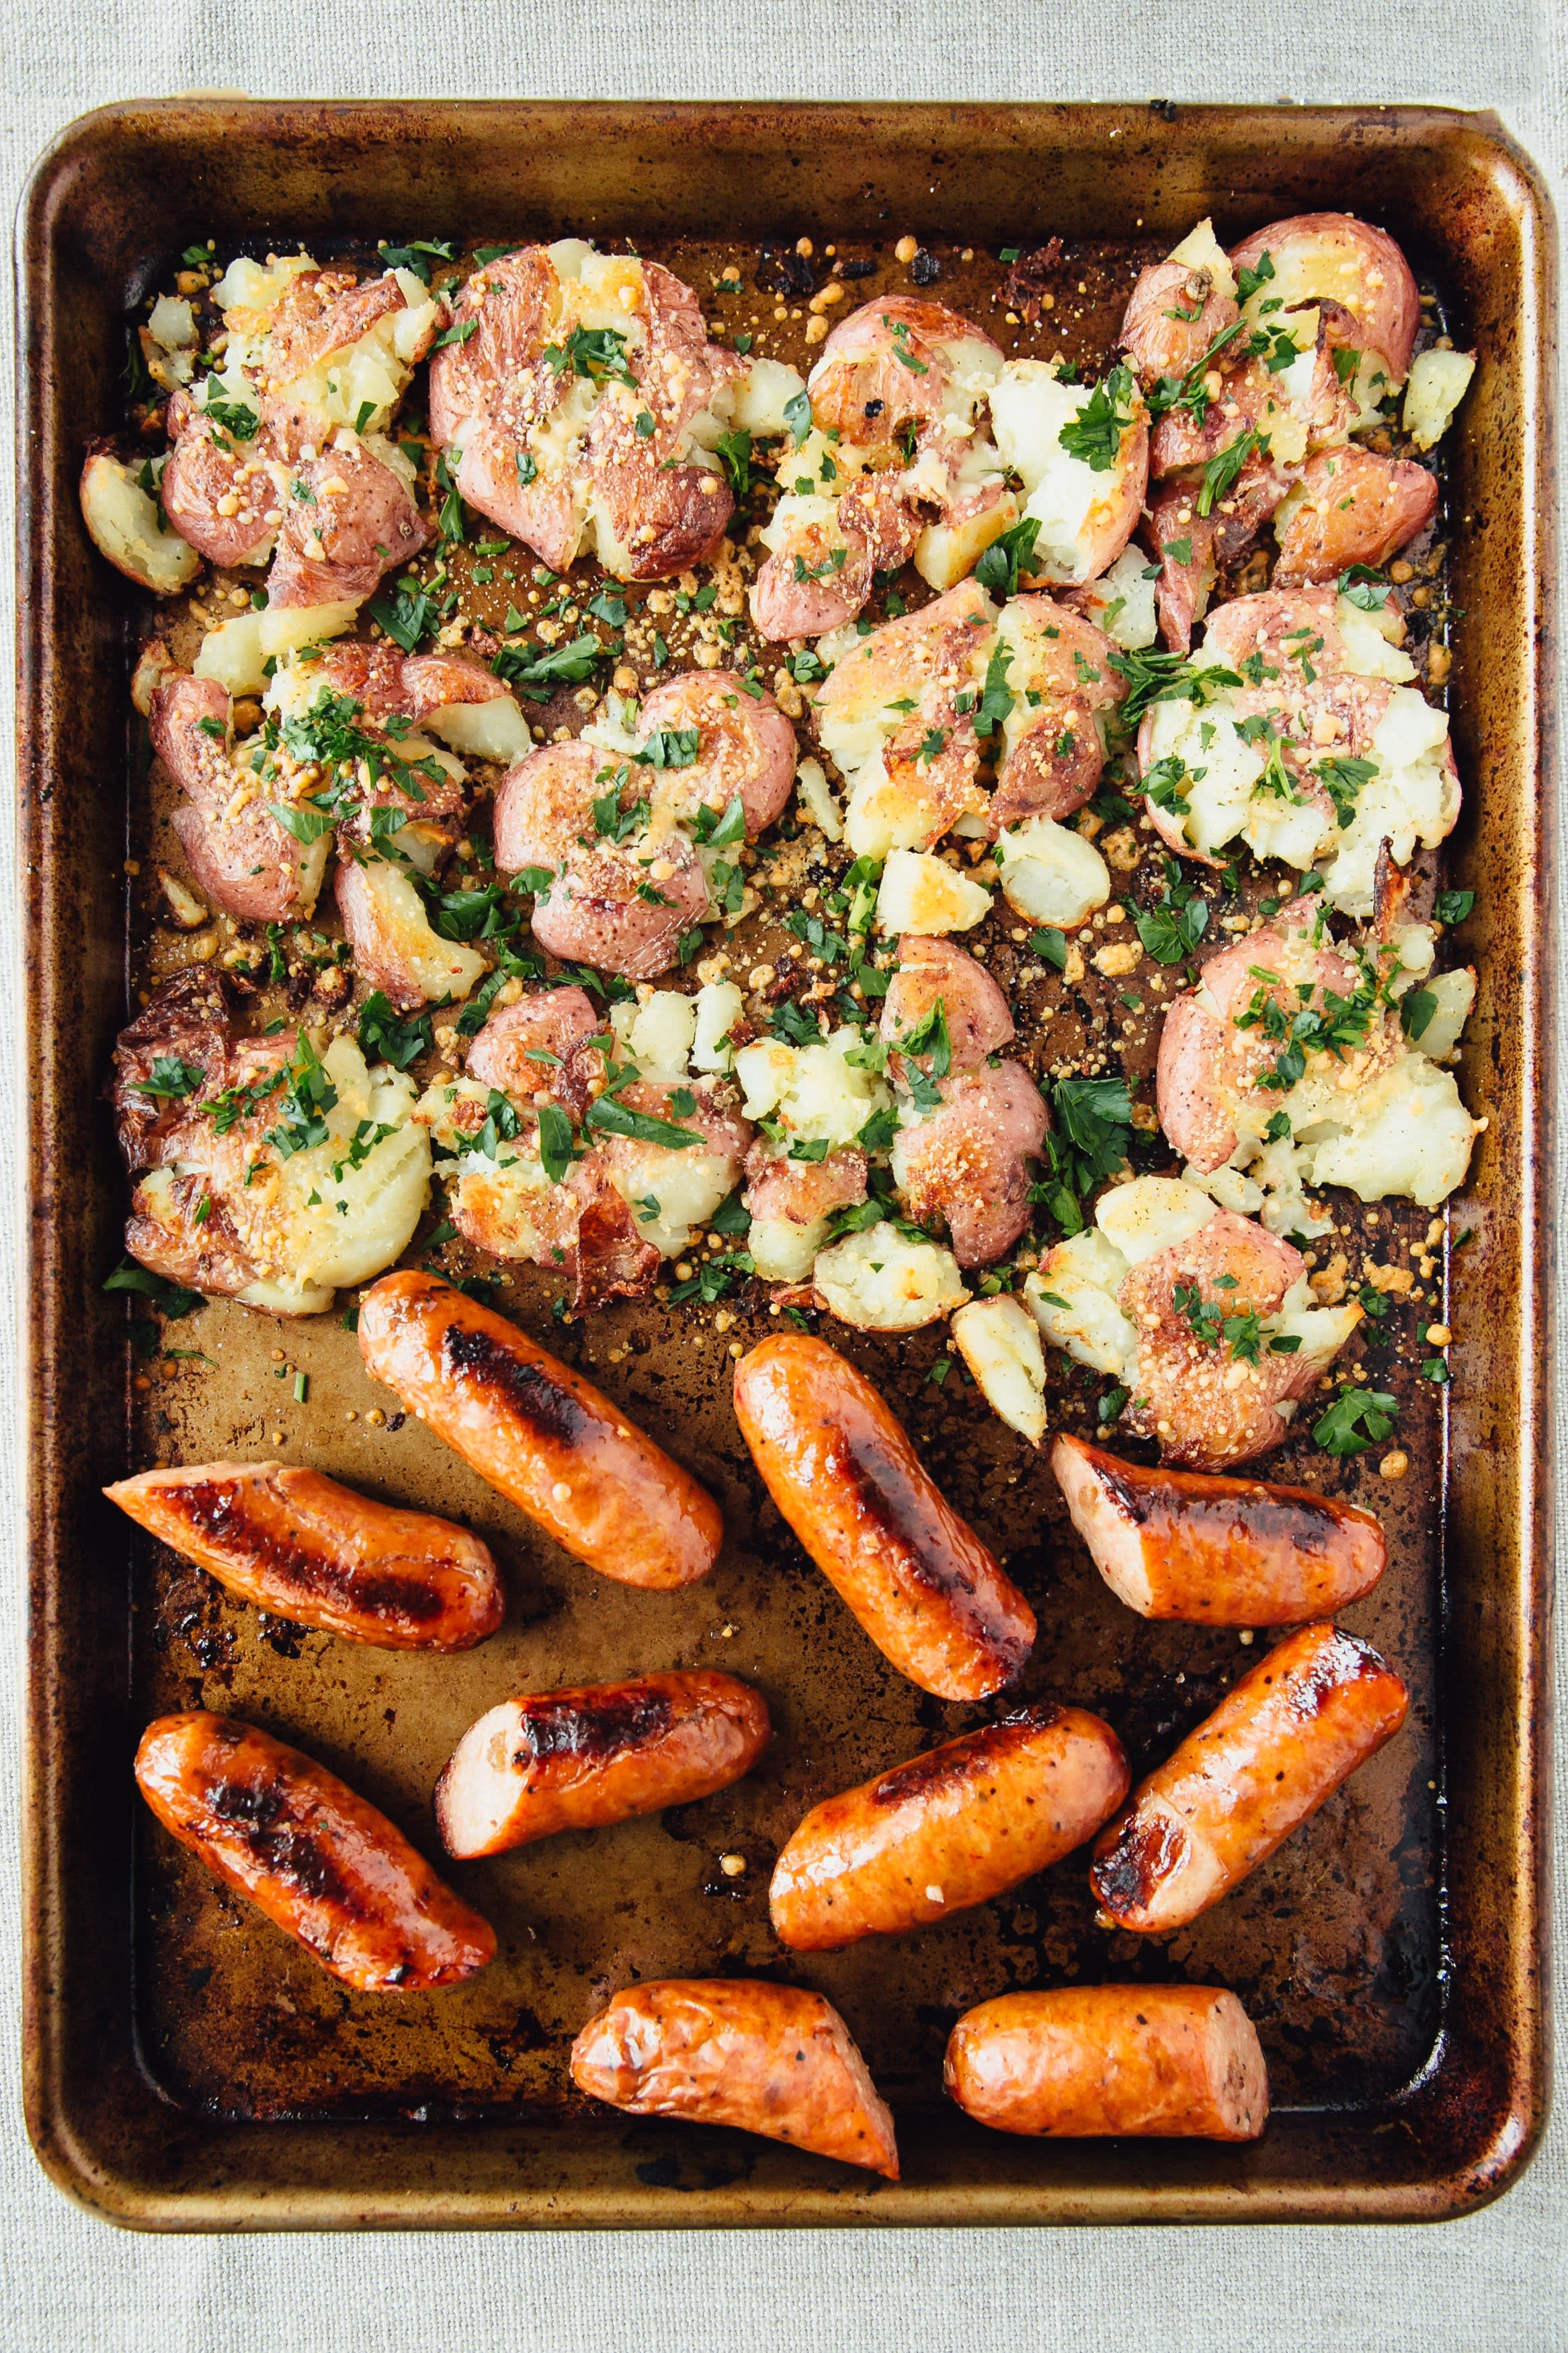 Roasted Smashed Parmesan Potatoes and Sausage